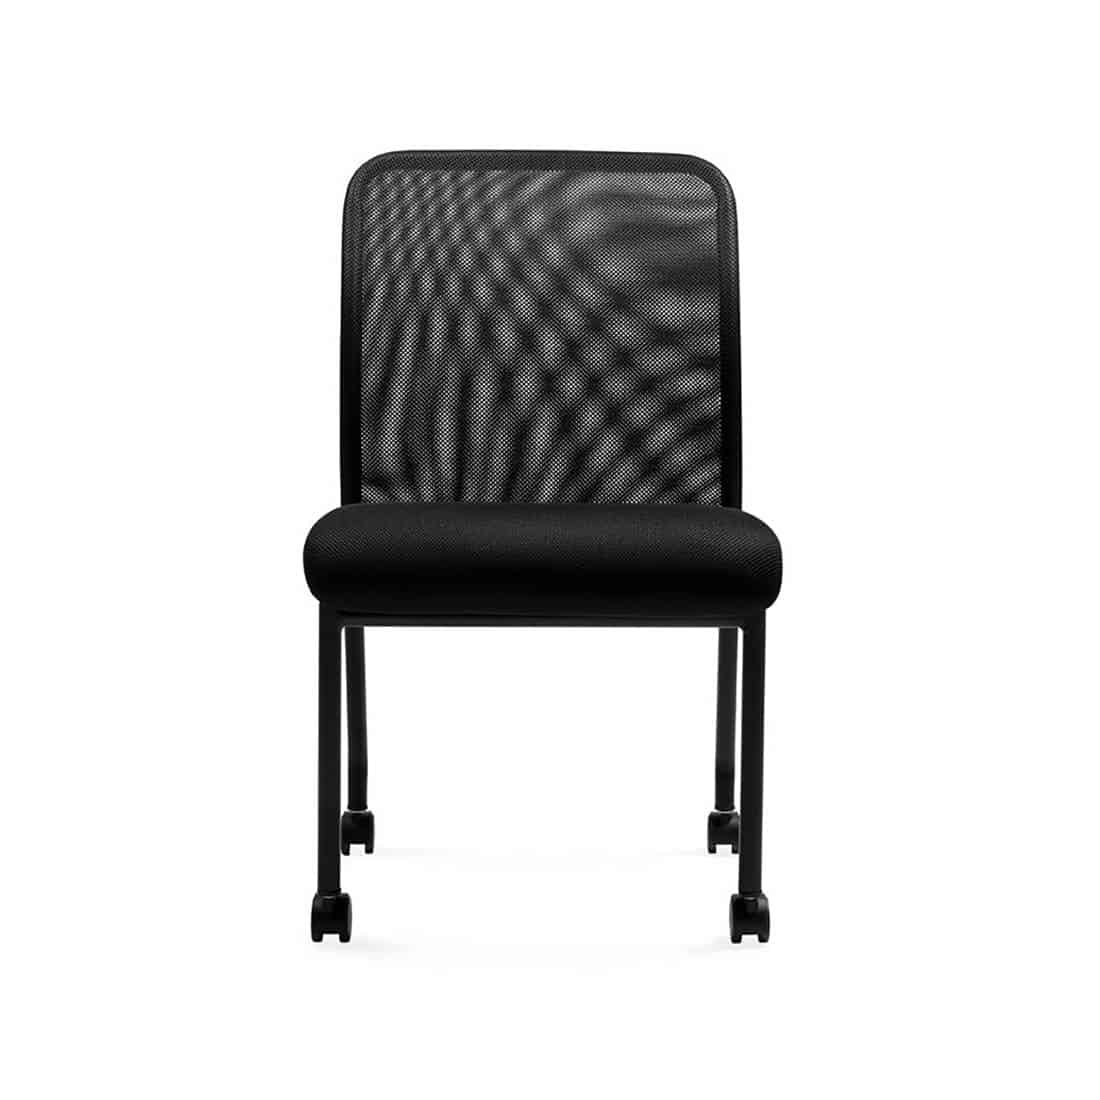 meeting room chairs office chair vector conference seating for sale joyce contract global otg 11761b 1